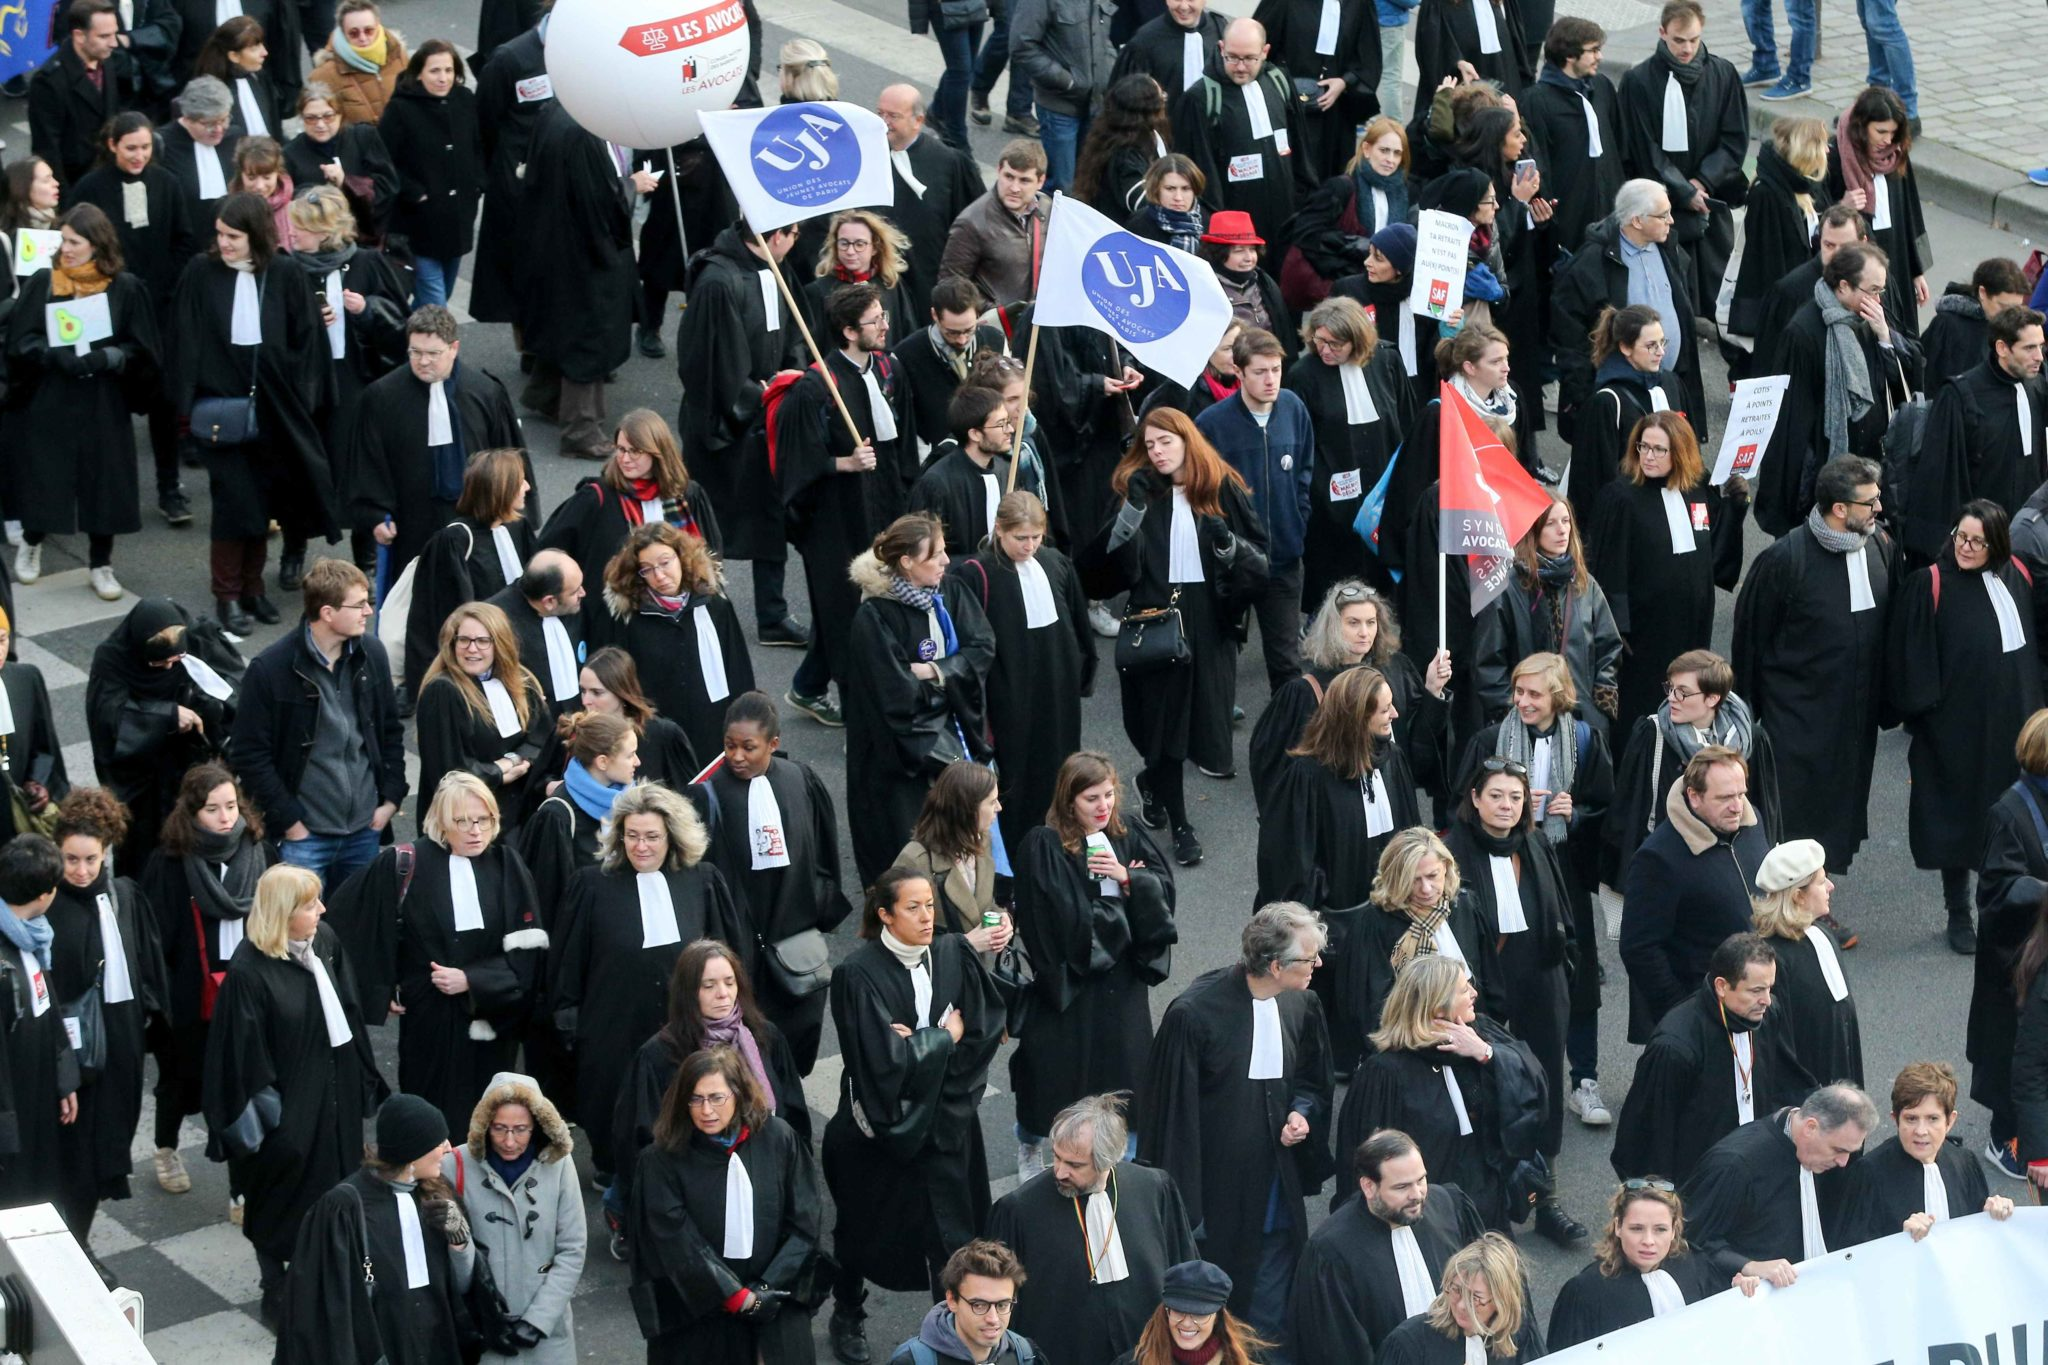 Lawyers wearing their robe walk during a demonstration in Paris, on January 11, 2020, as part of a nationwide multi-sector strike against the French government's pensions overhaul. The country has been hit by 37 days of crippling train and metro stoppages